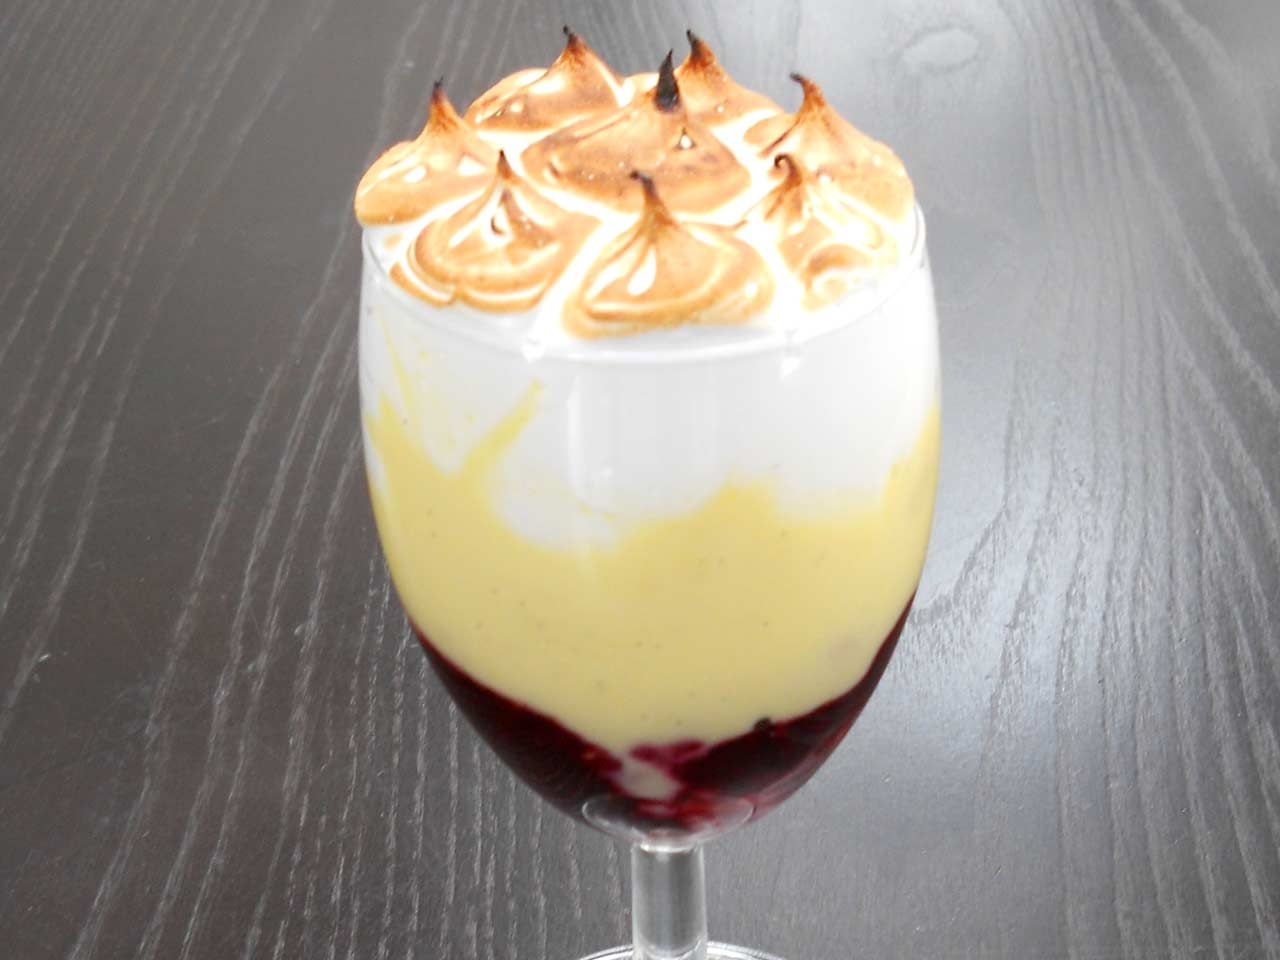 Queen of Puddings, a deliciously decadent trifle with a meringue topping